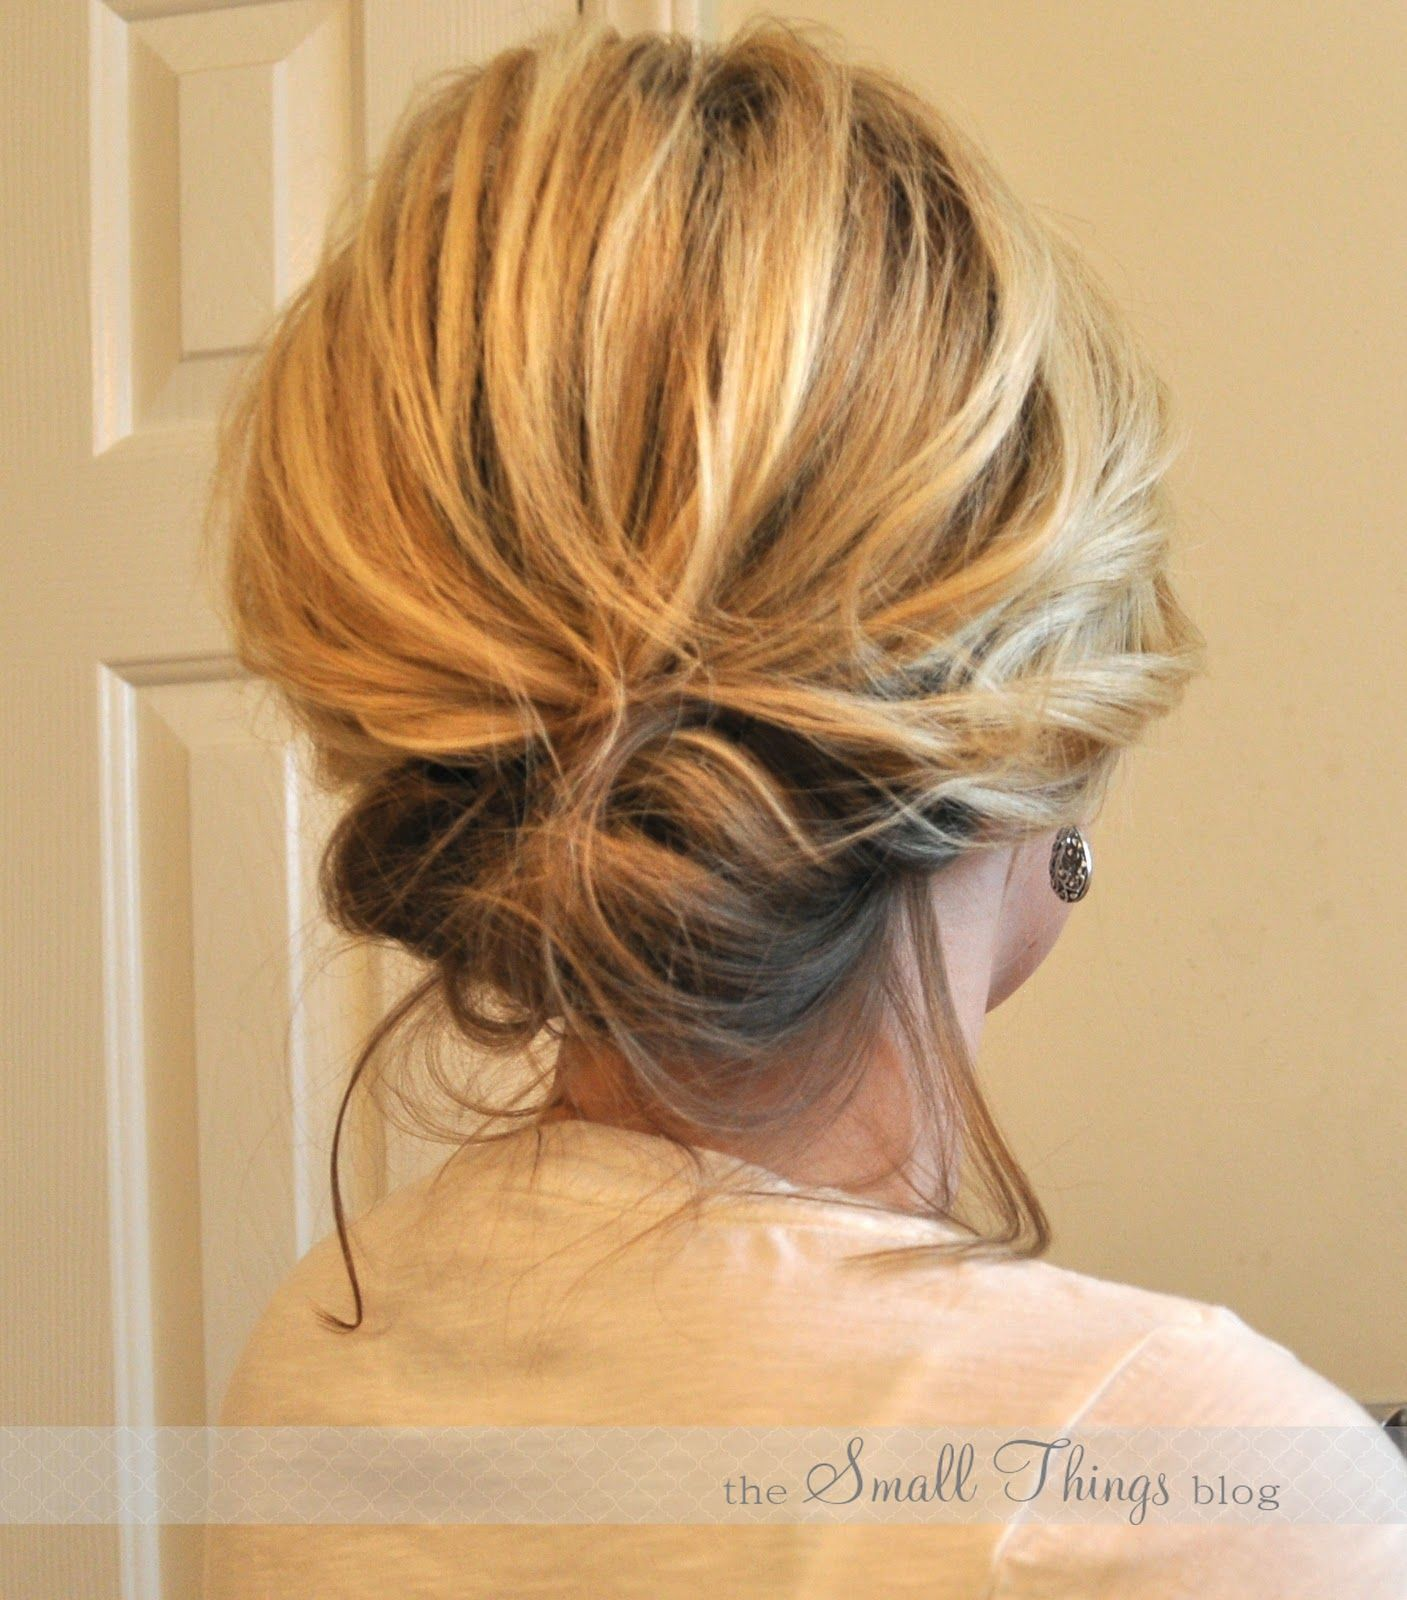 The small things blog the chic updo easy updo for medium to long